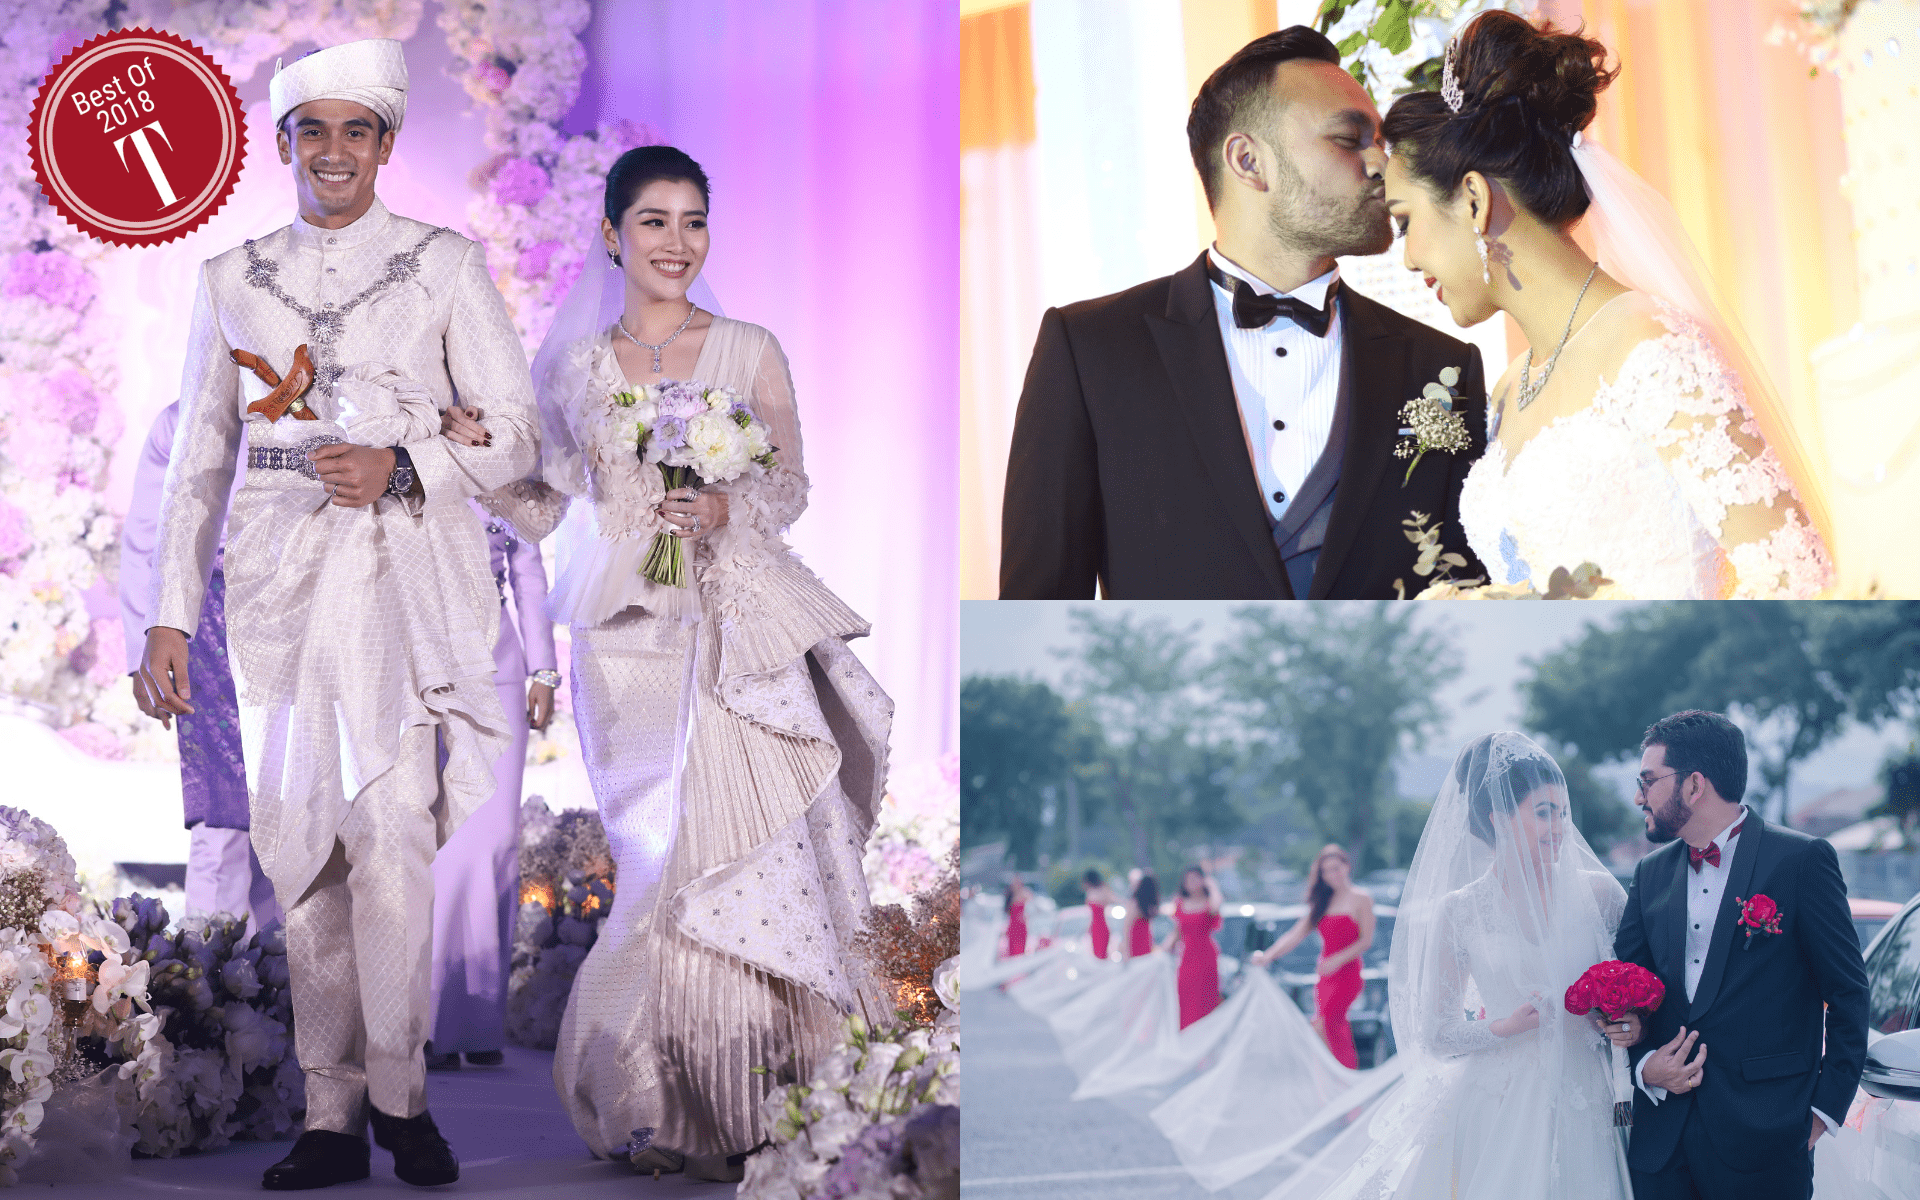 Best Of 2018: The Glitz and Grandeur Of Our Best-Loved High Society Weddings